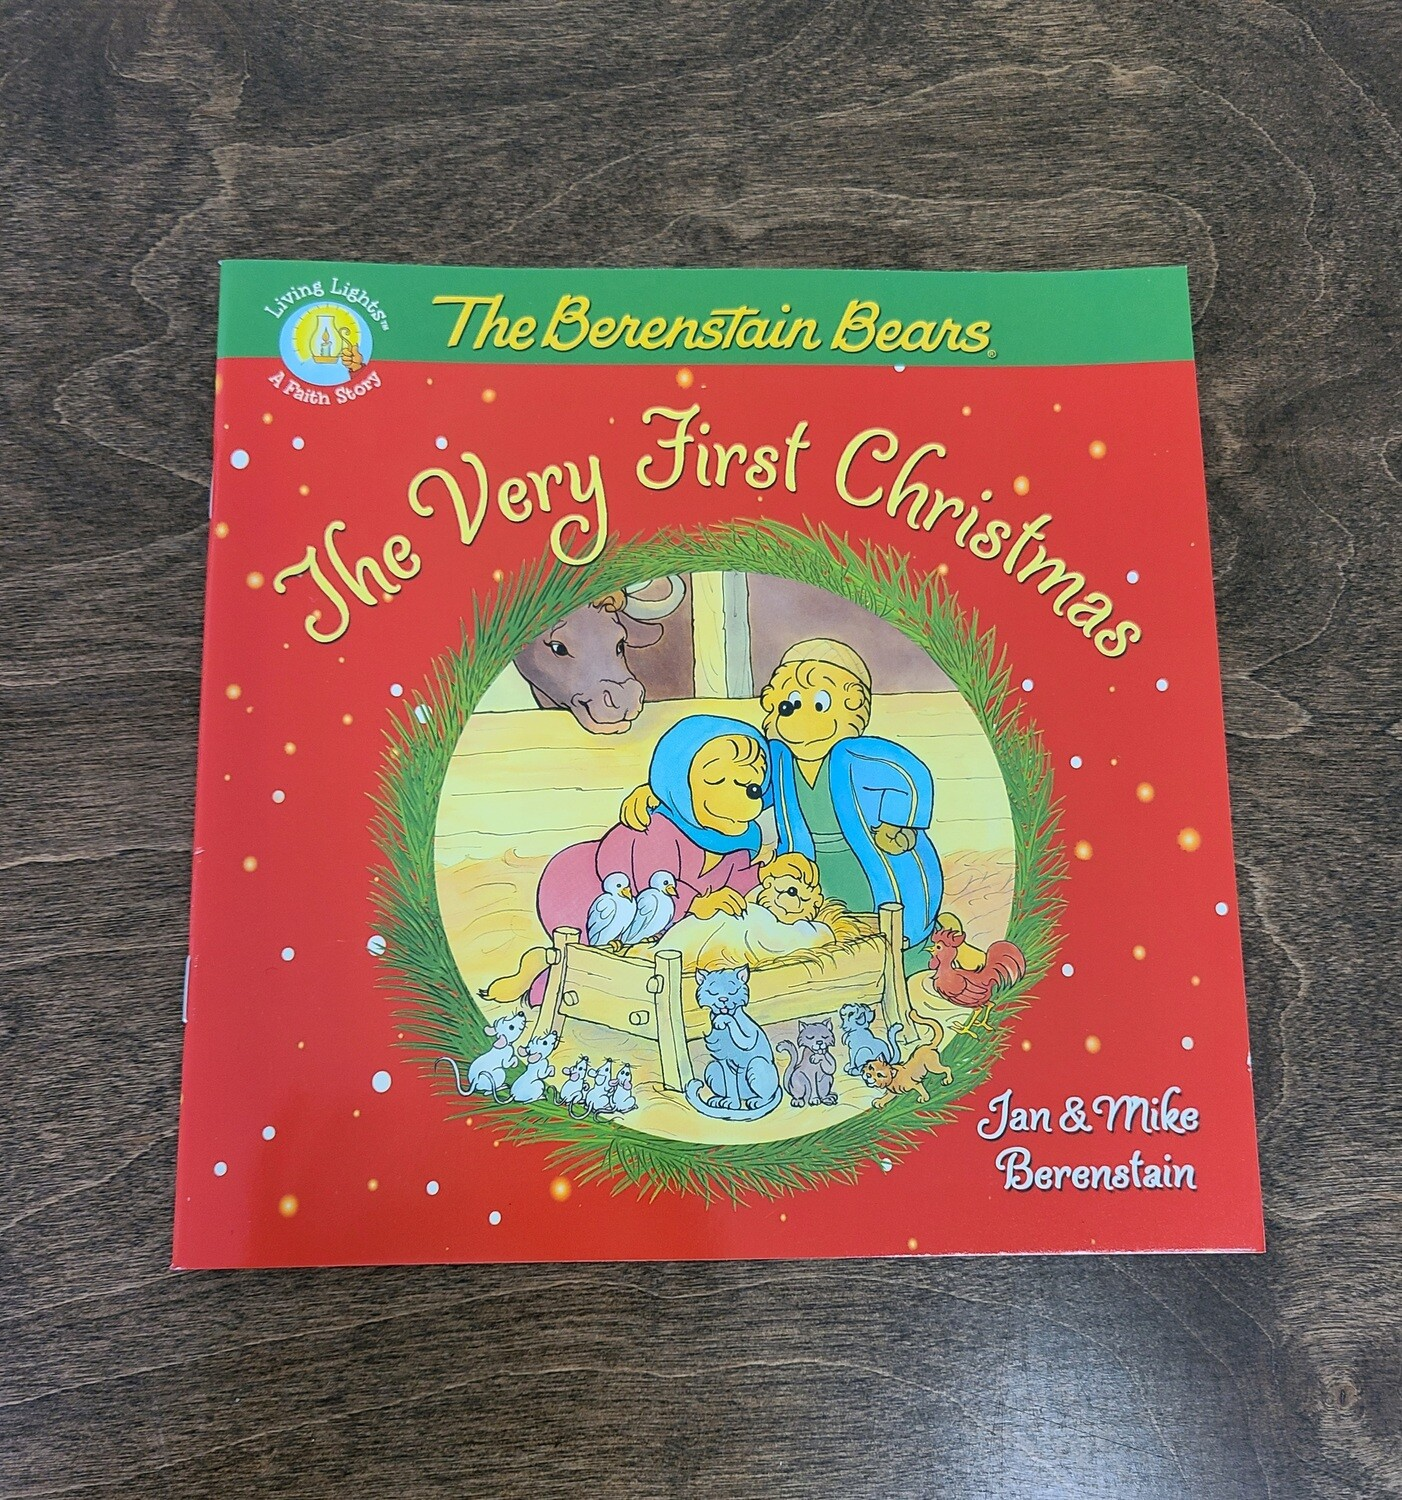 The Berenstain Bears: The Very First Christmas by Jan and Mike Berenstain